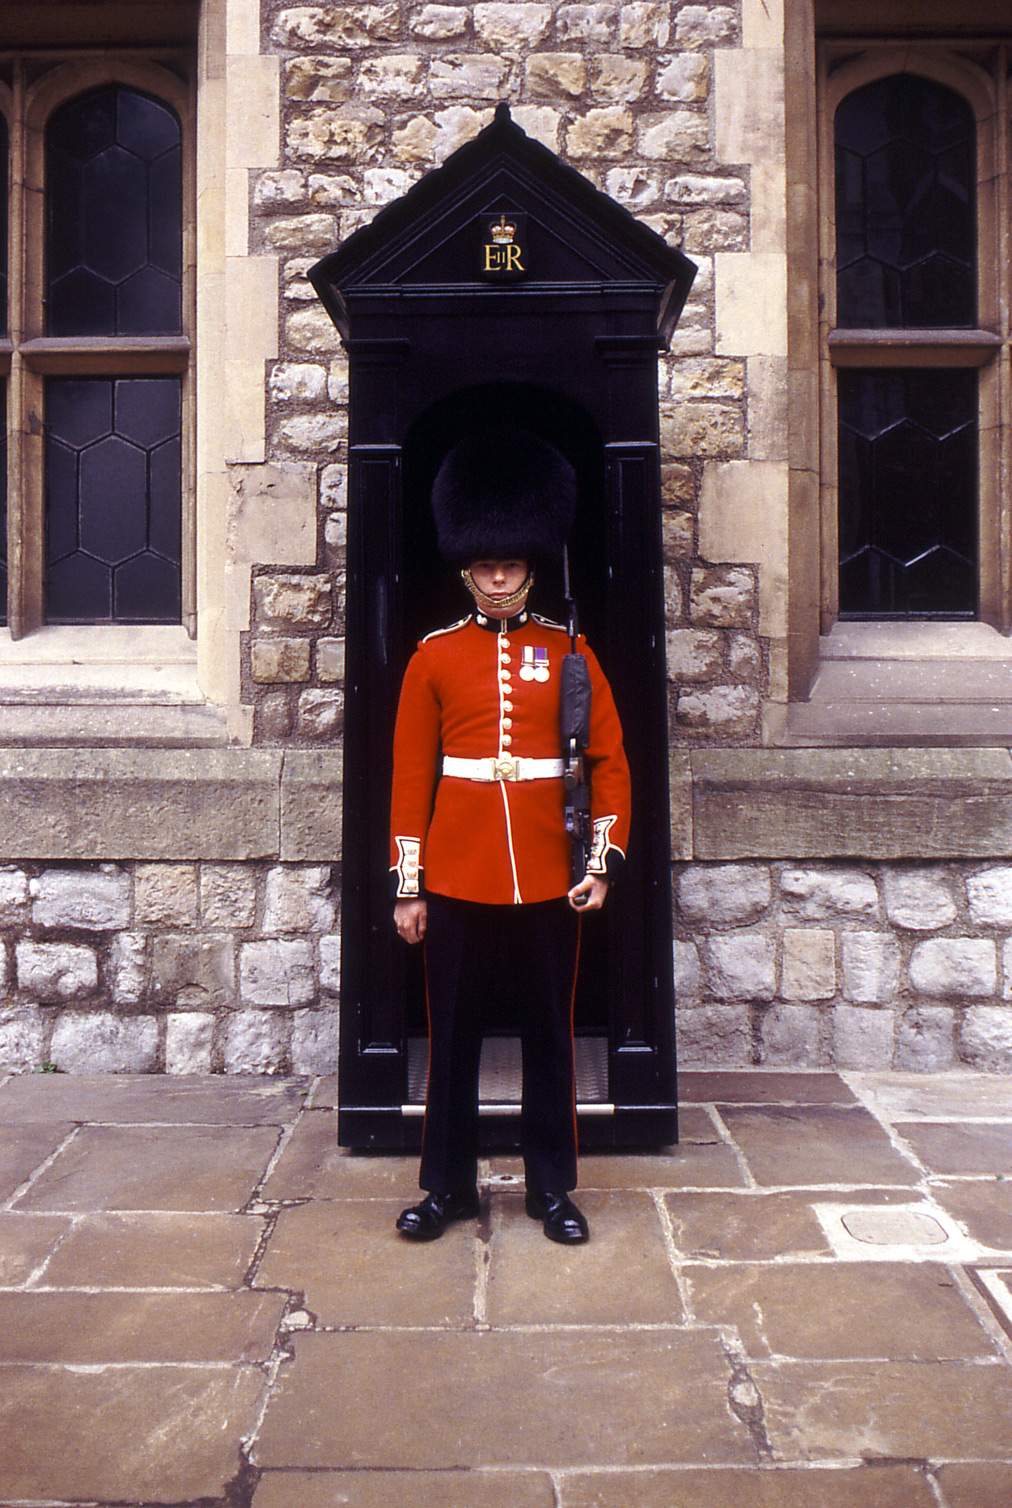 Can recommend chubby buckingham guard opposite